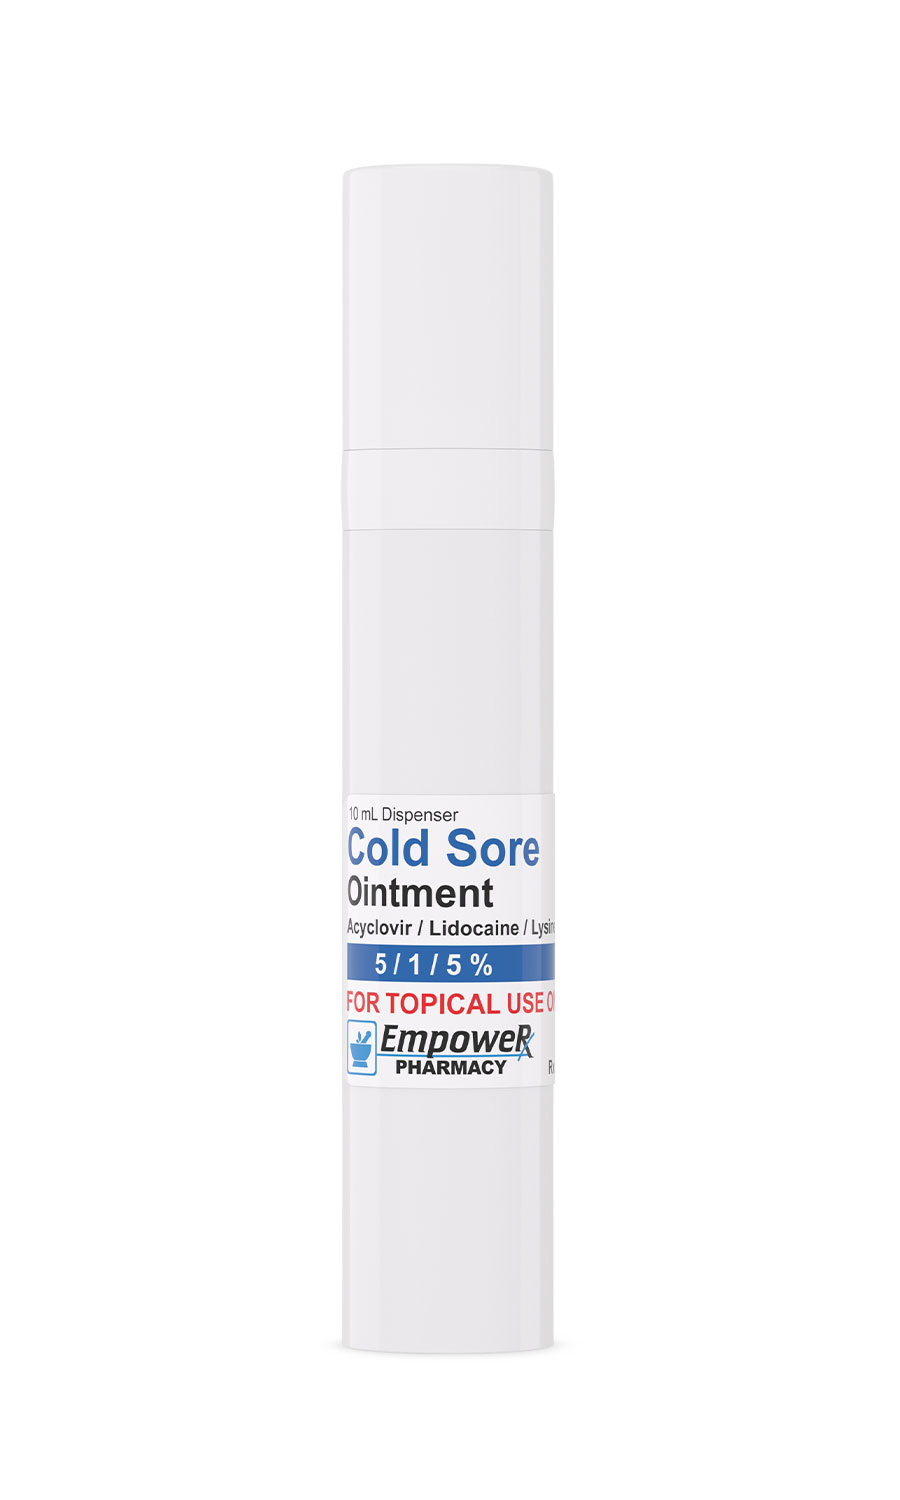 Cold Sore Ointment